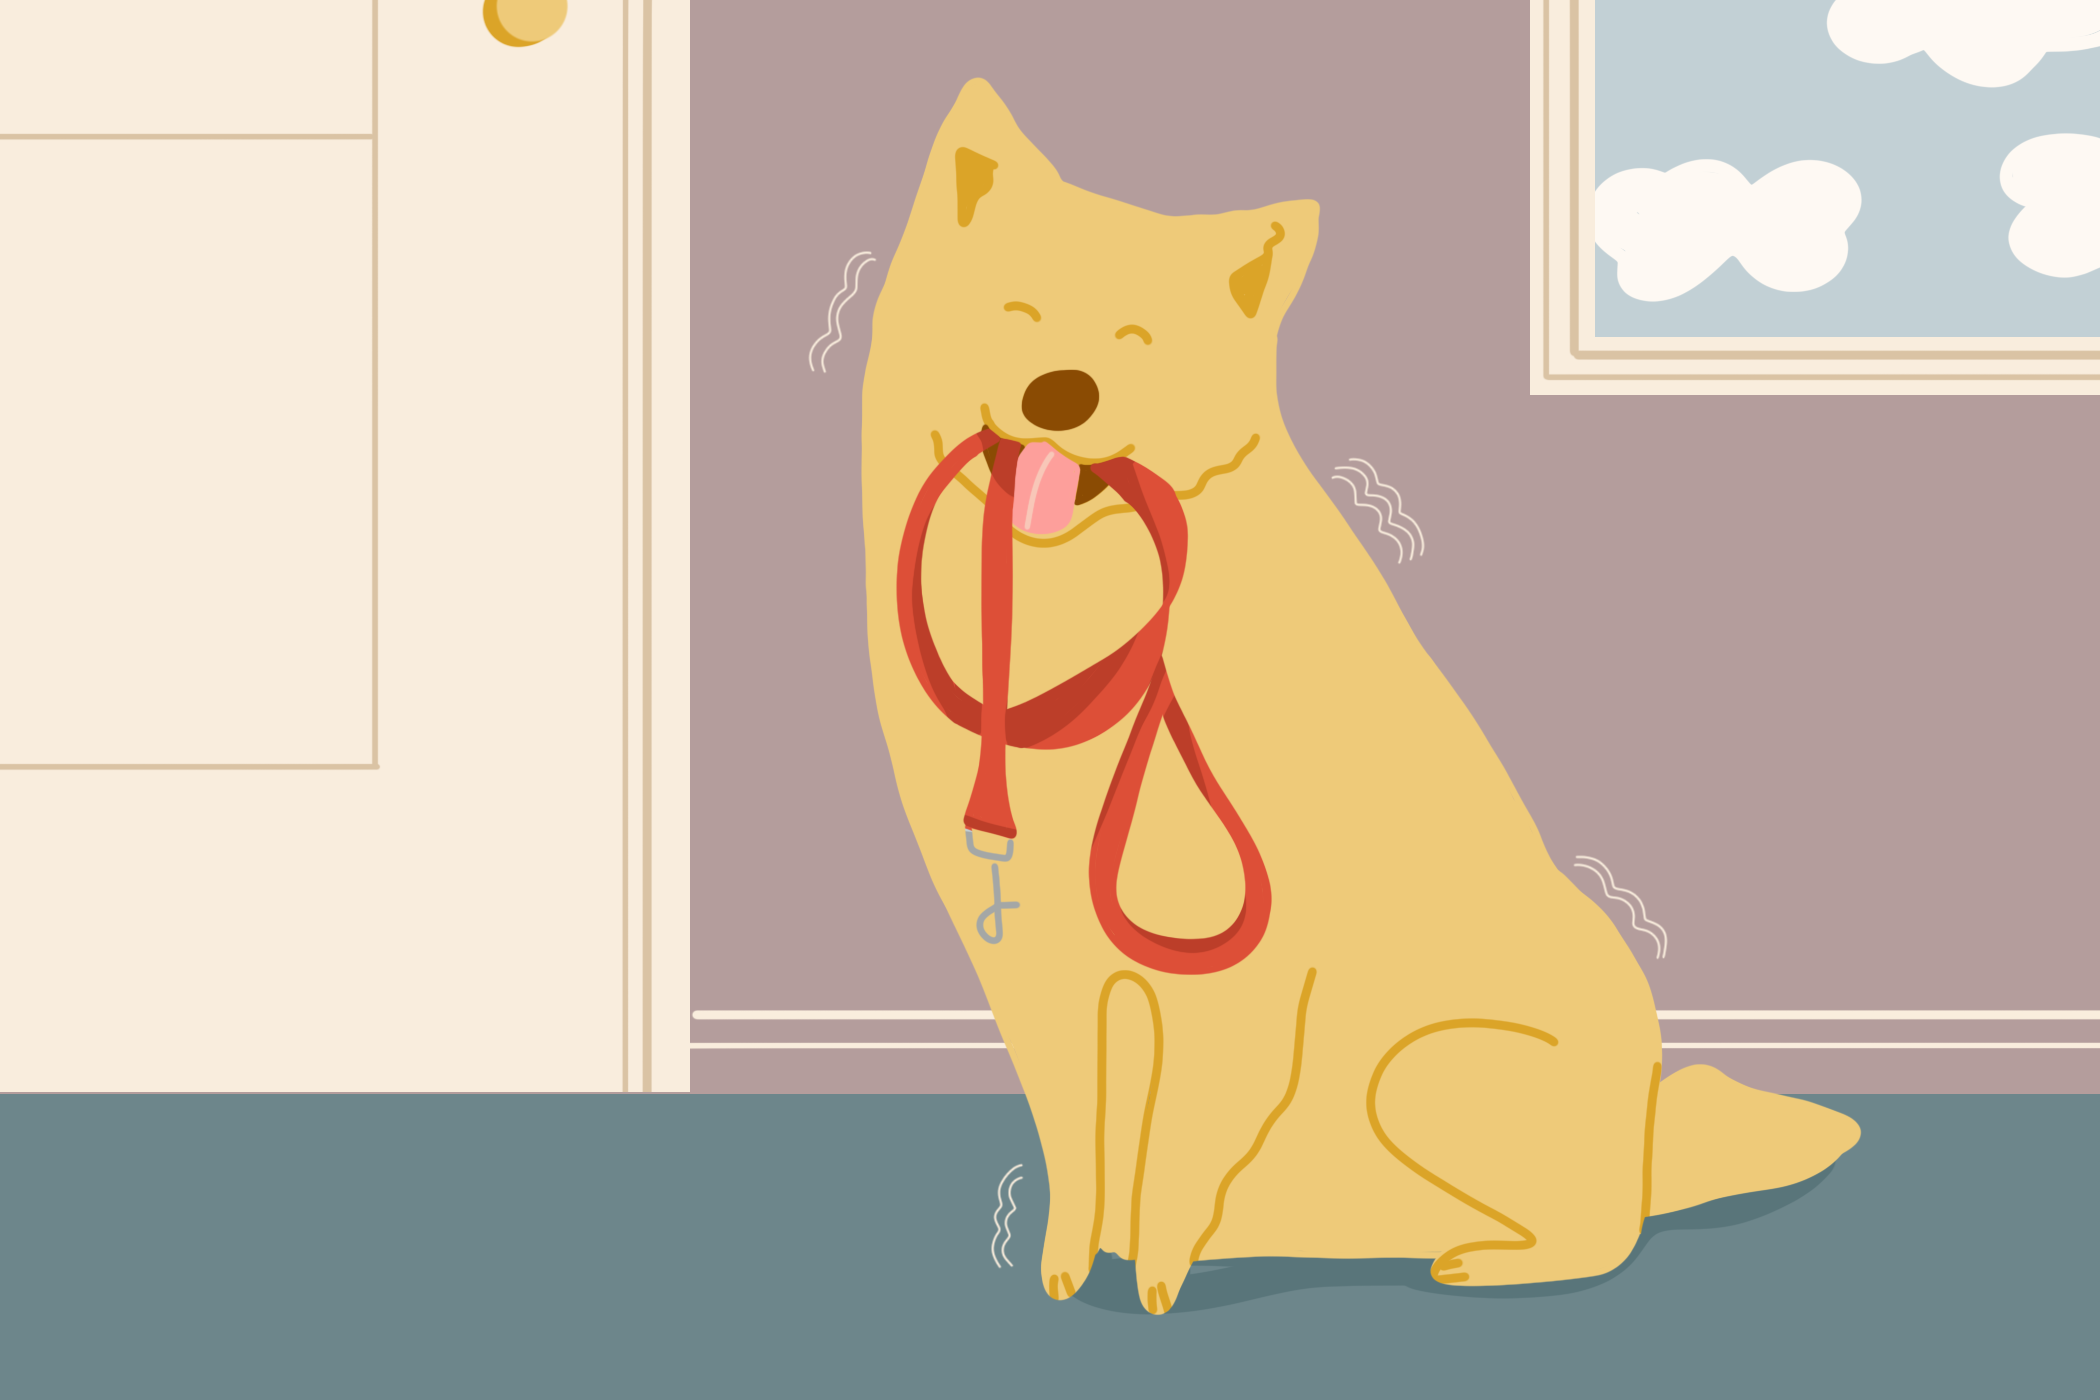 Illustration of blond dog happily shaking with leash in mouth